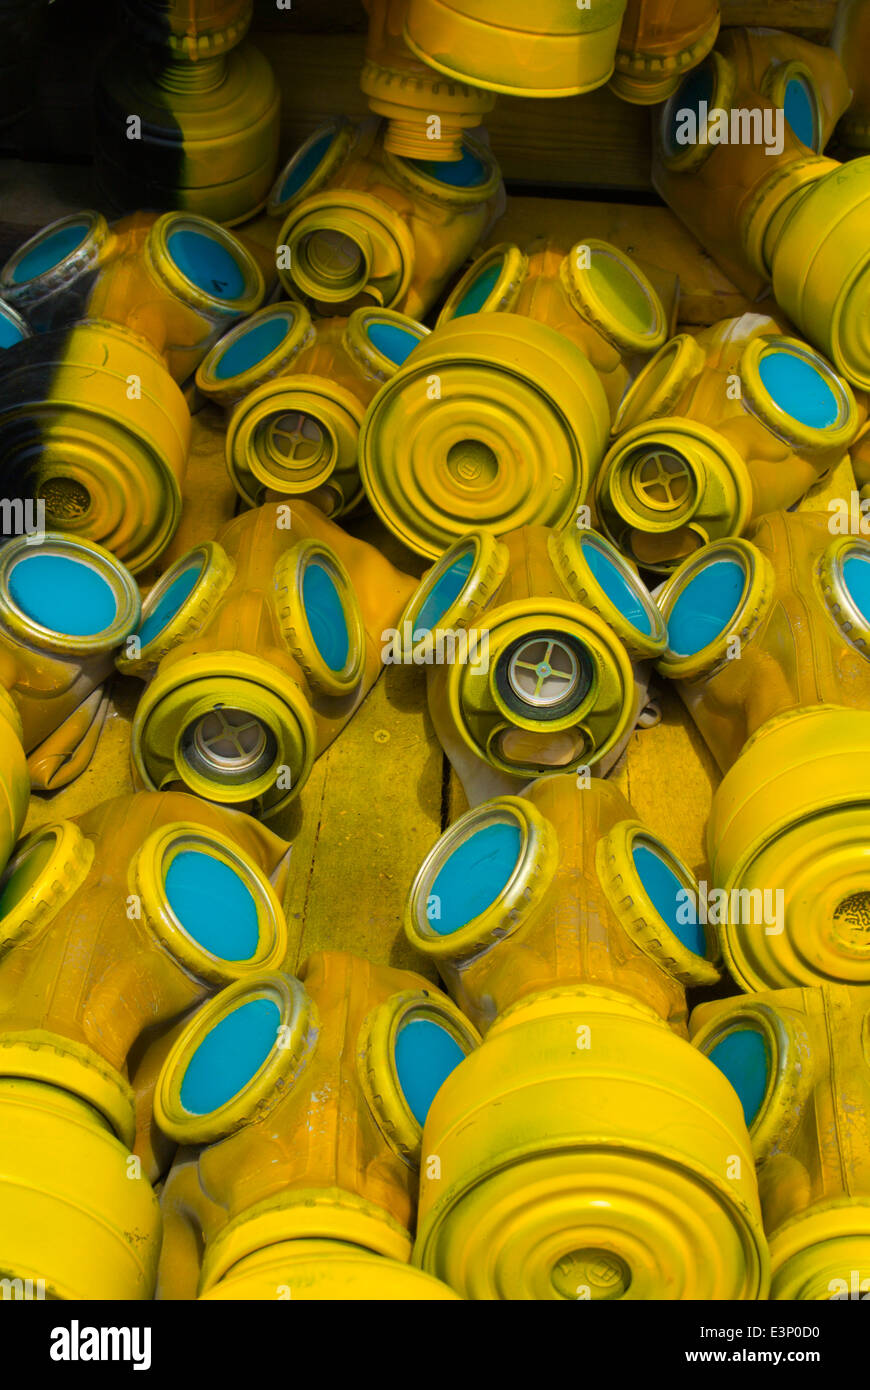 Gas mask sculpture made up of 400 gas masks on May 10 2014, NKD park, central Sofia, Bulgaria, Europe Stock Photo